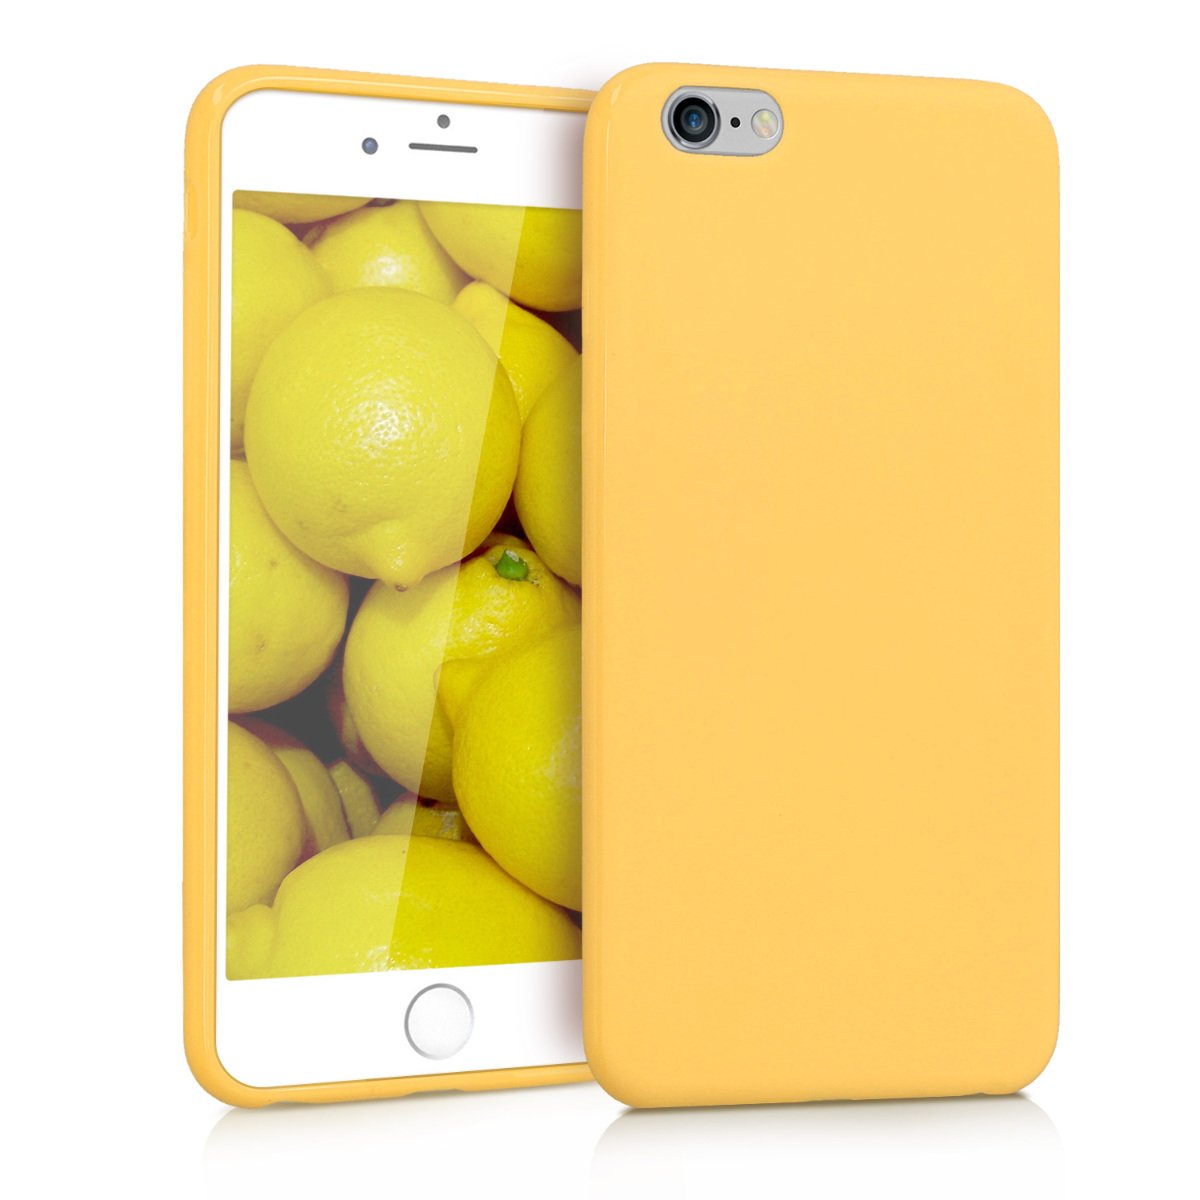 outlet store c9c69 c1079 kwmobile TPU Silicone Case for Apple iPhone 6 Plus / 6S Plus - Soft  Flexible Shock Absorbent Protective Phone Cover - Yellow Matte